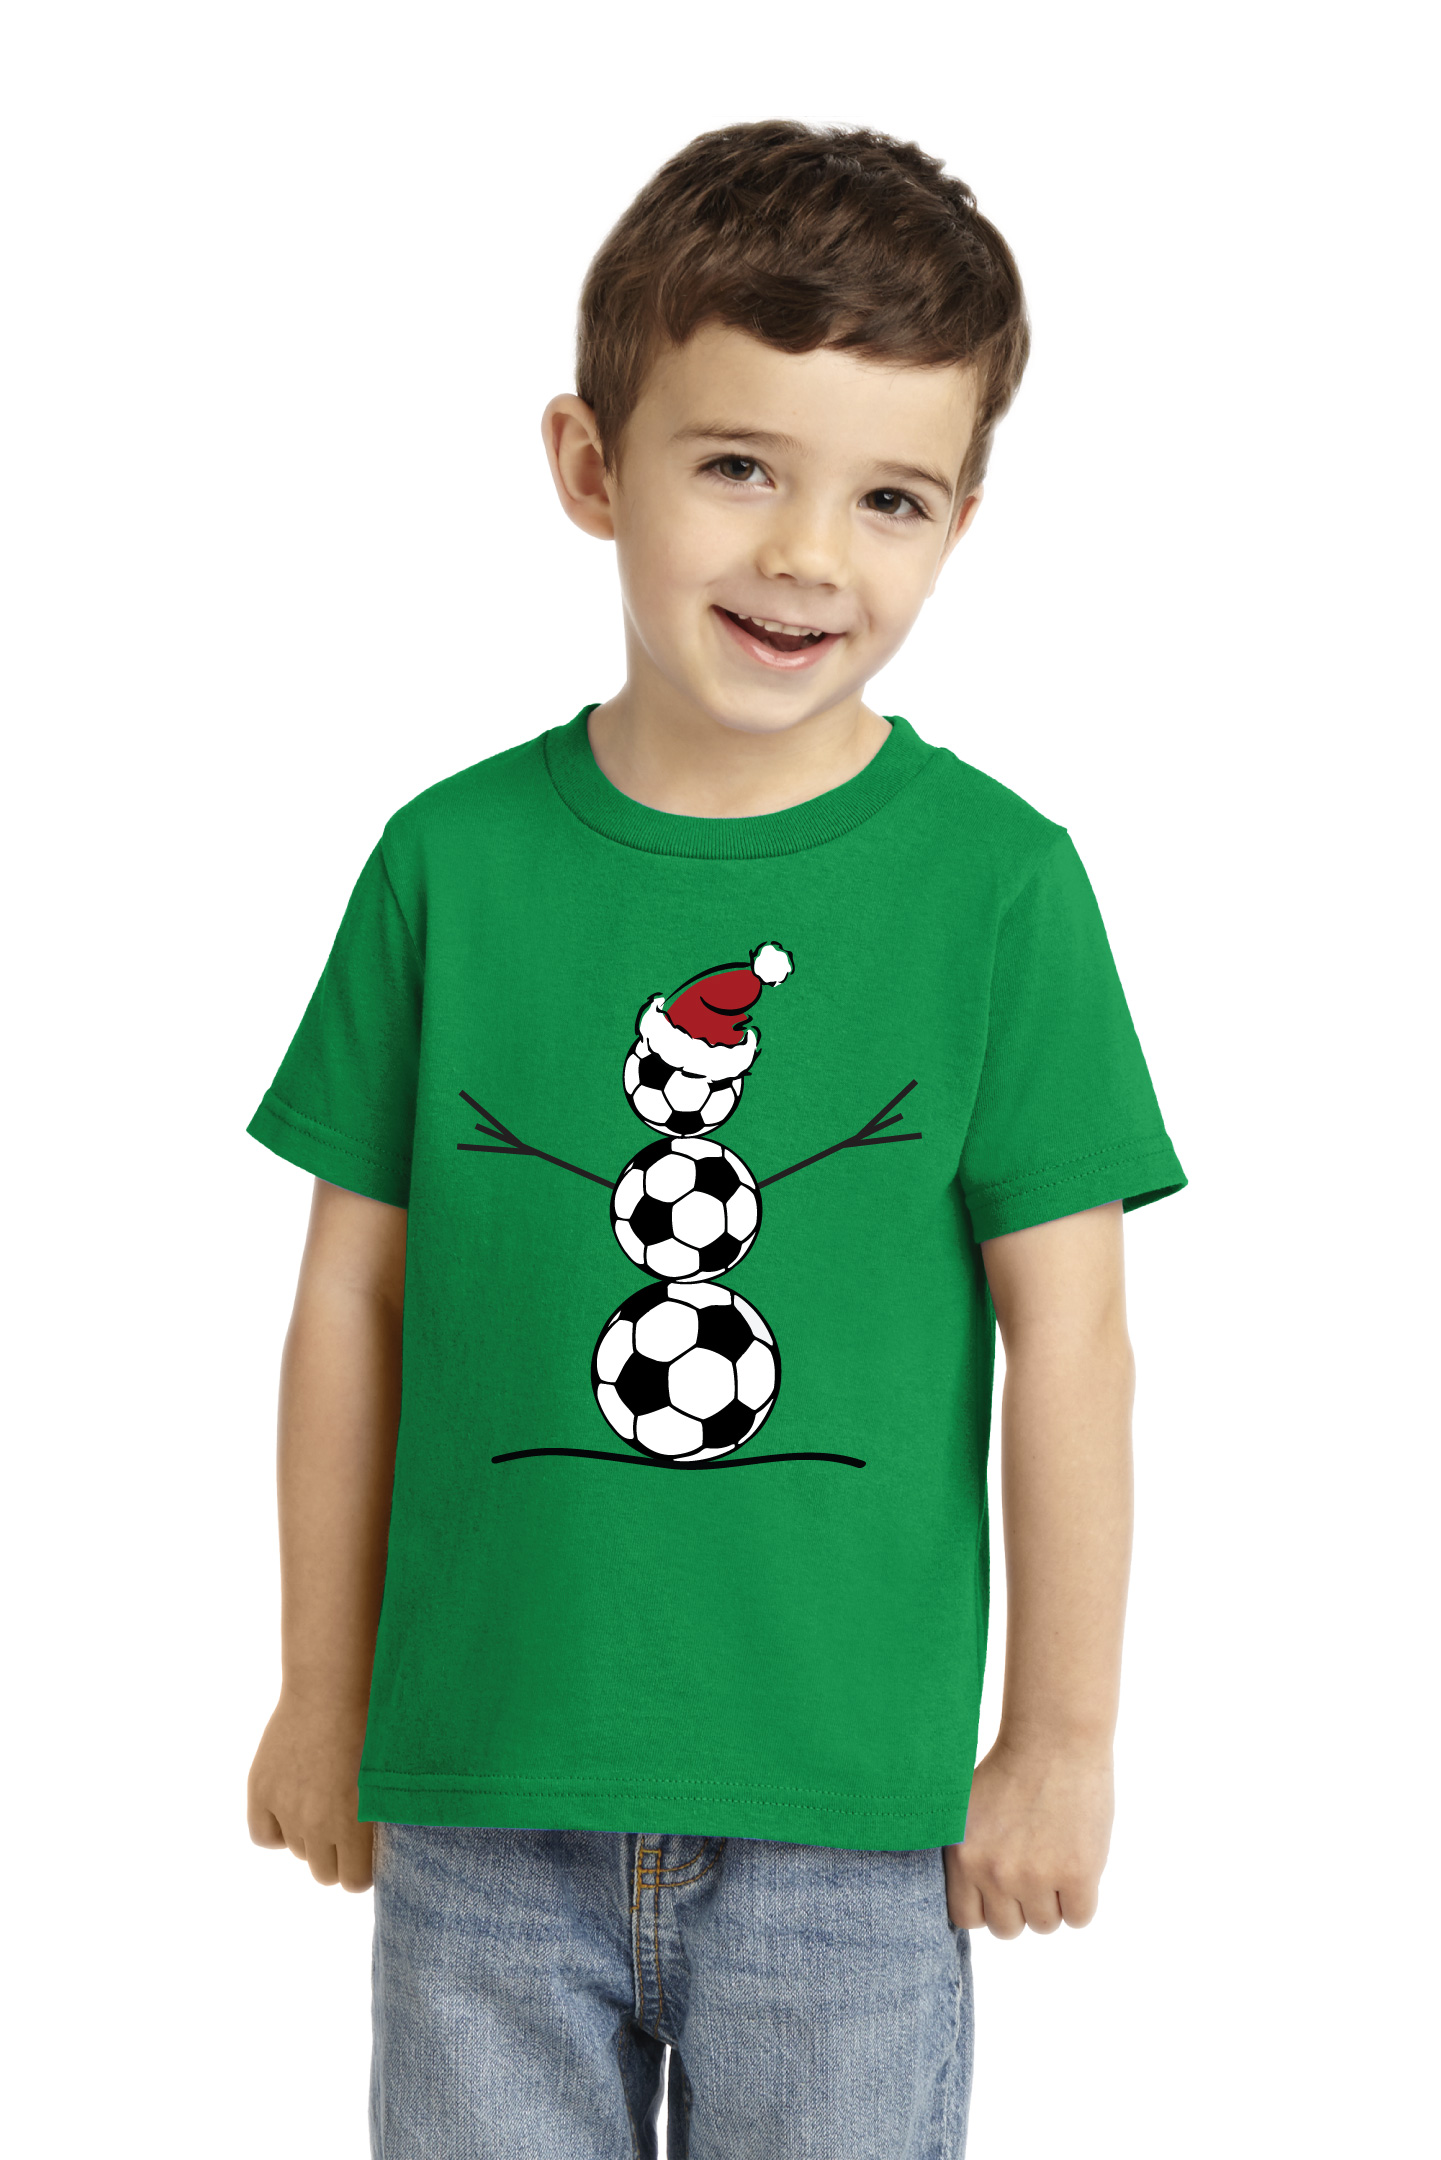 Soccer Snowman T-shirt on toddler model by Code Four Athletics